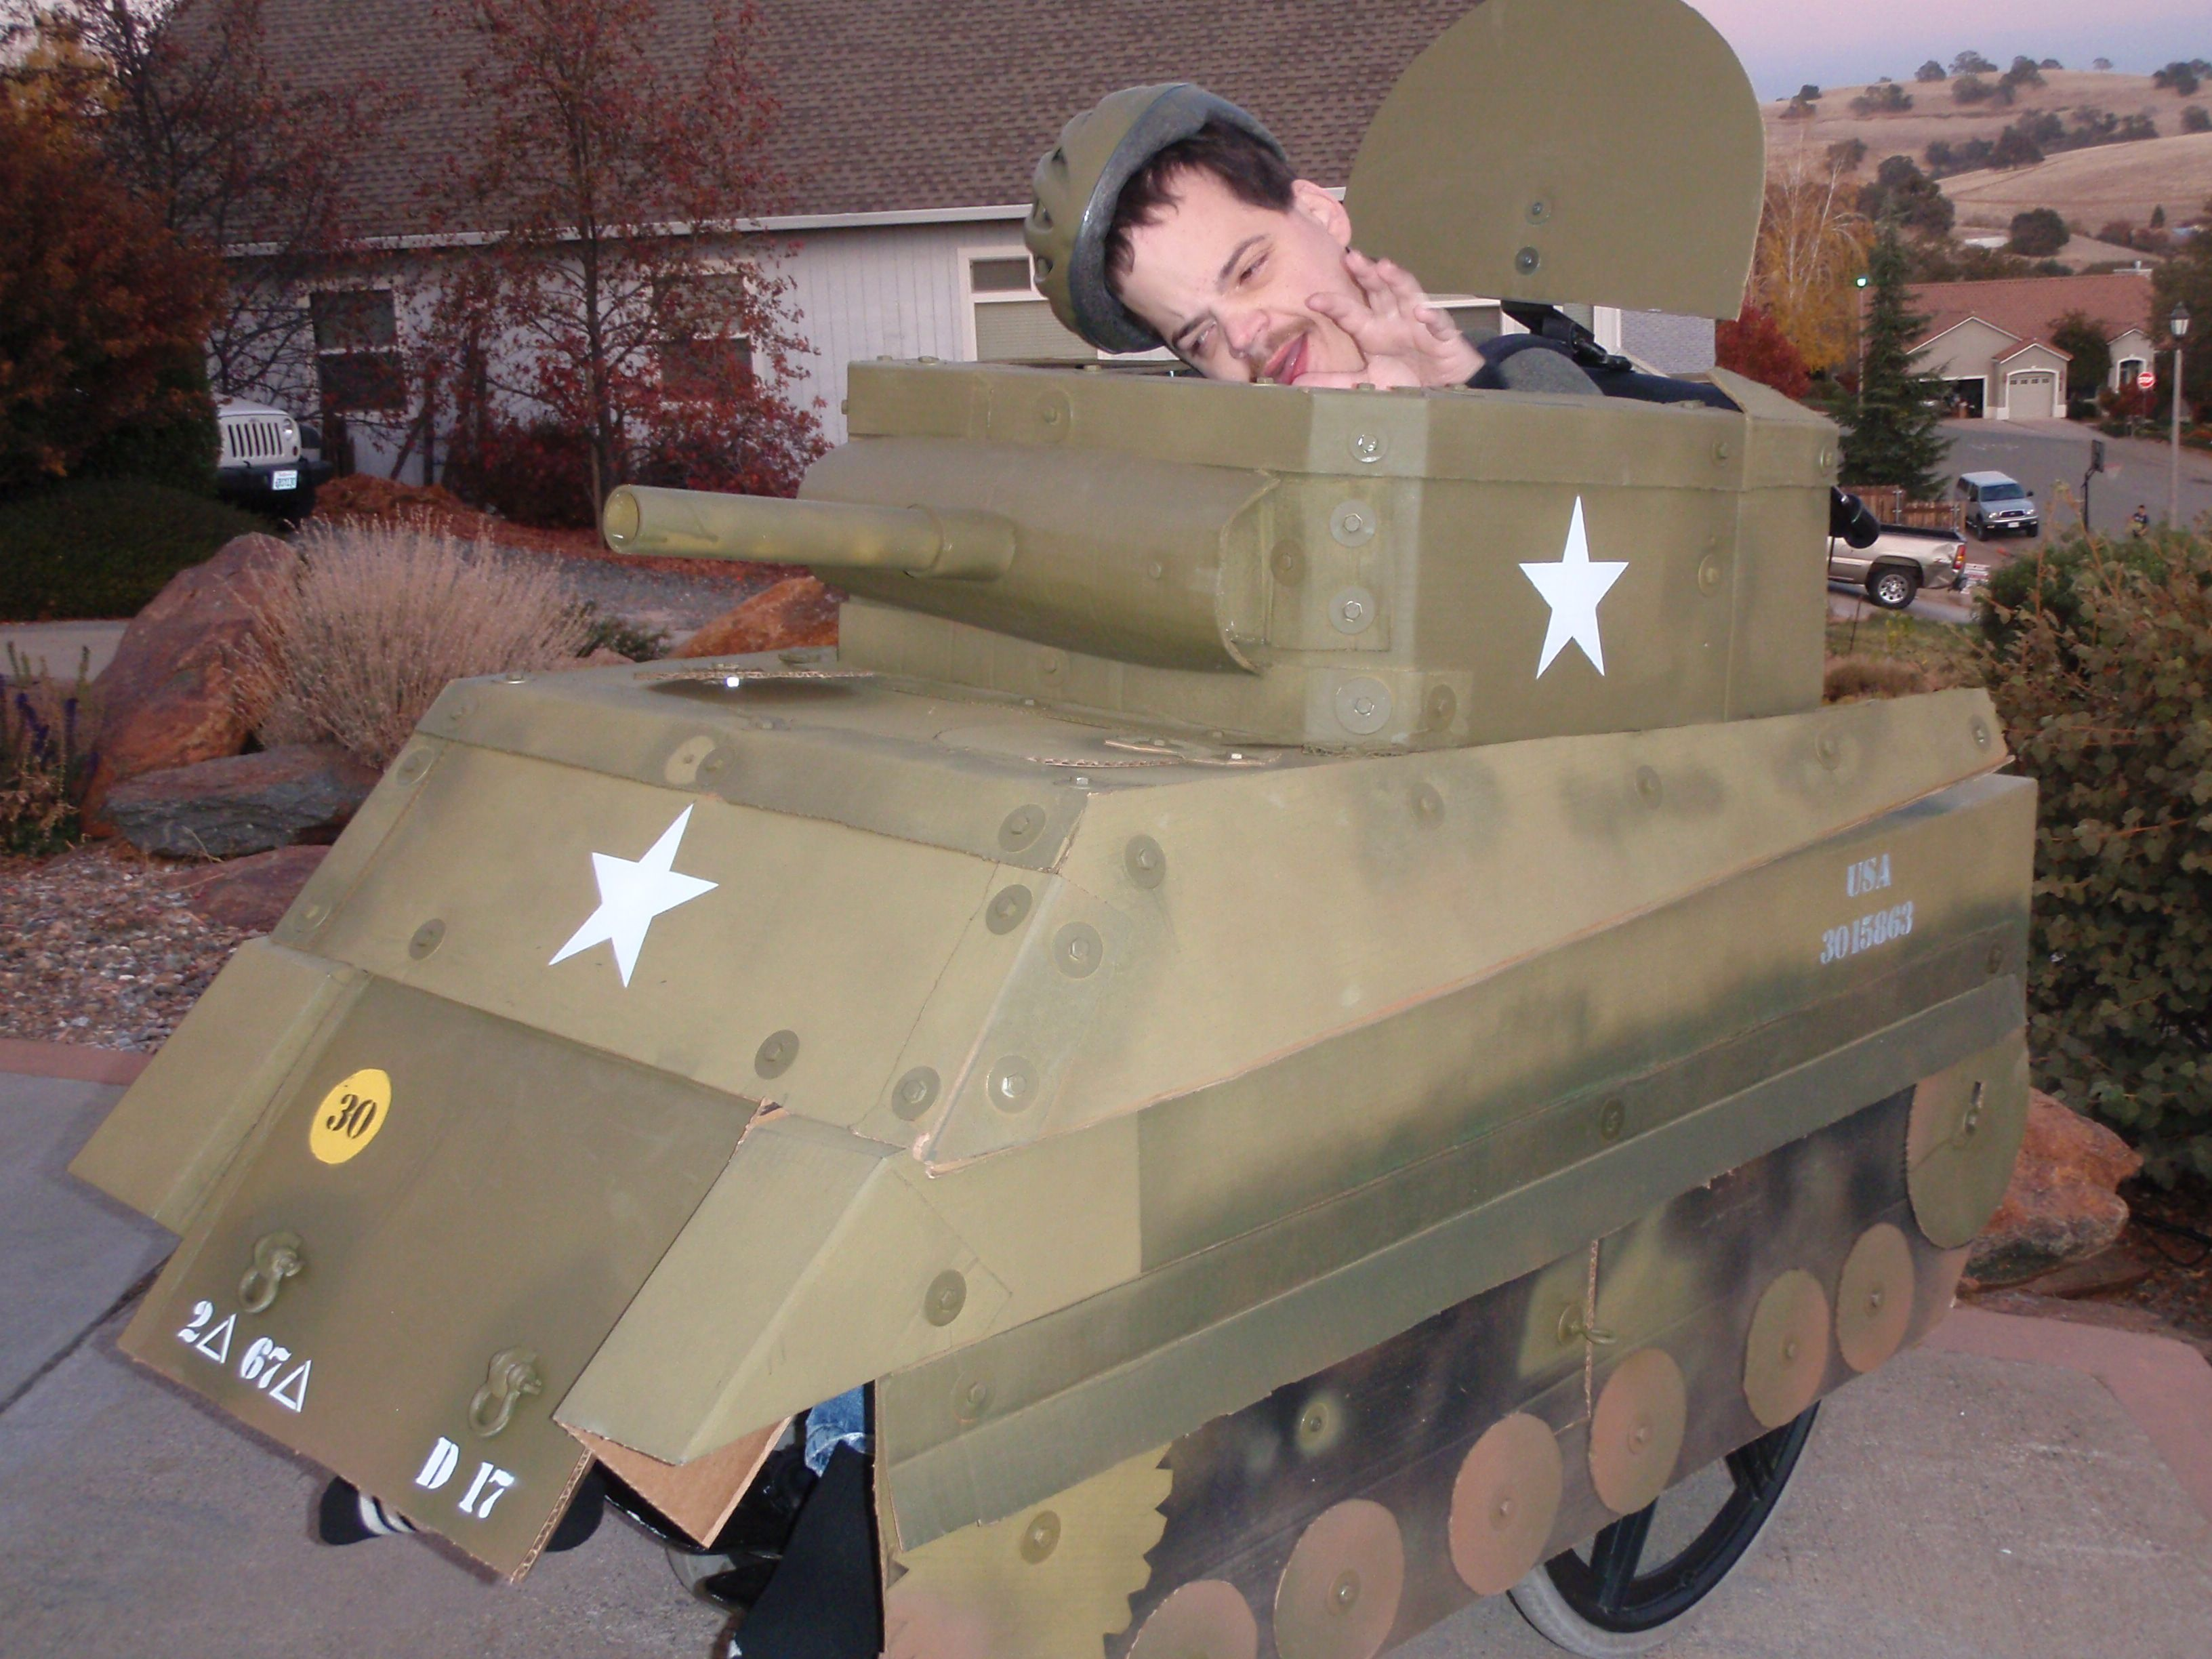 Coolest Army Tank Costume | Army, Costumes and Halloween costumes